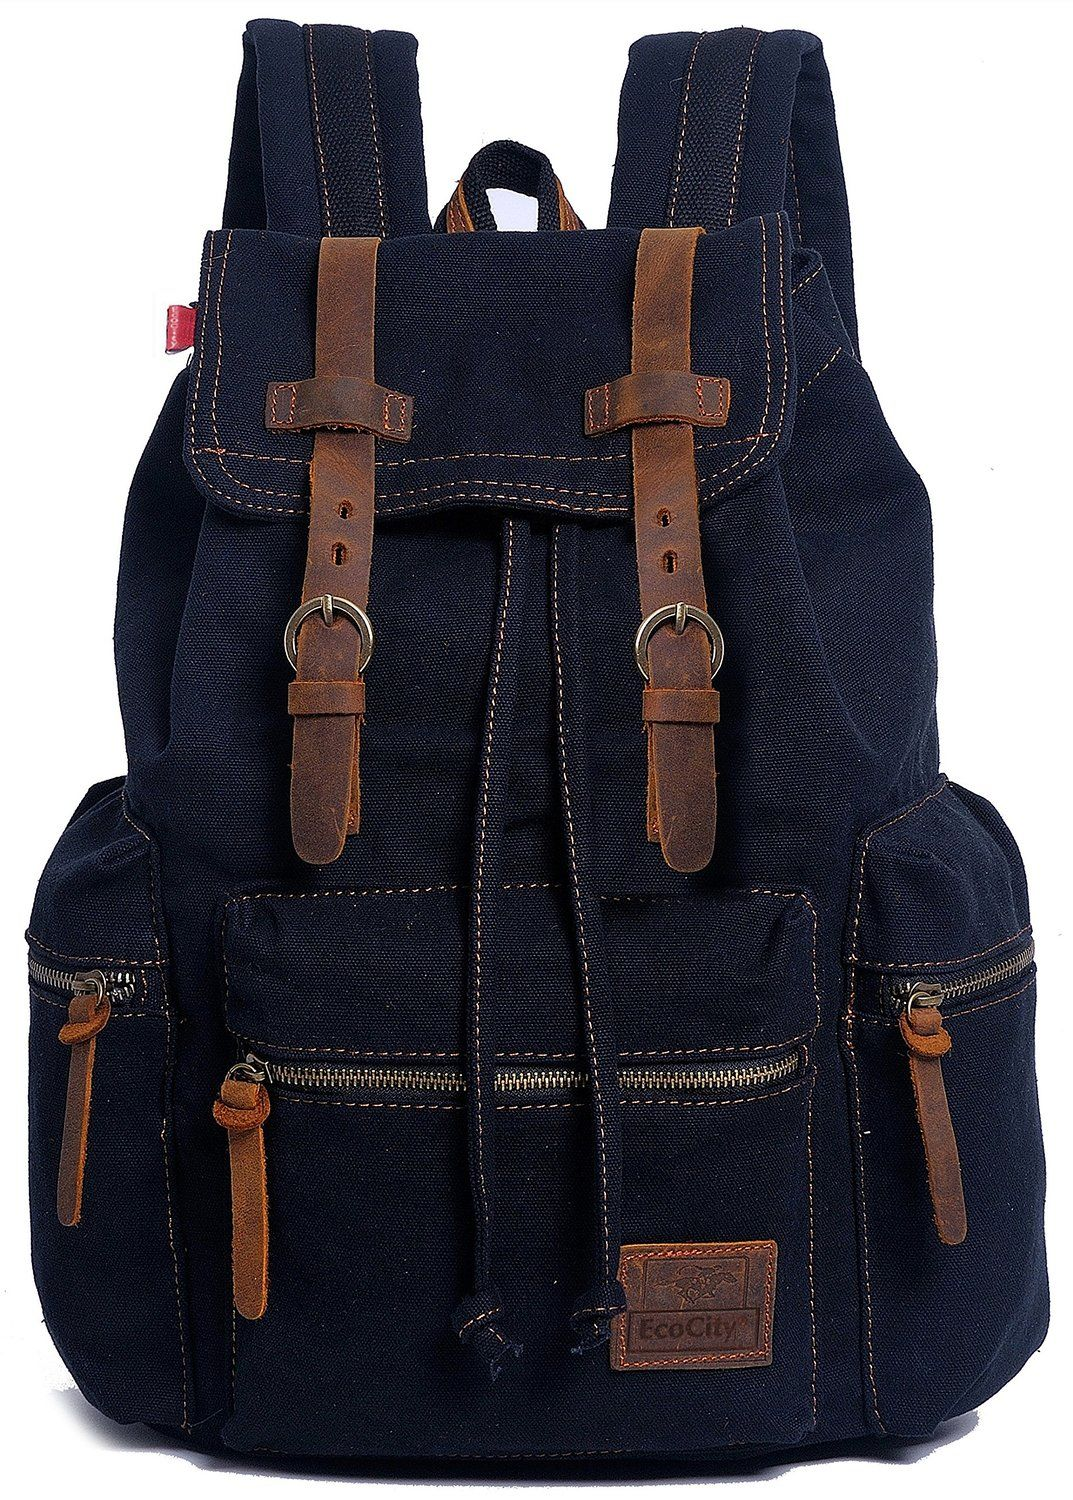 Camping Bags : Backpack and accessories :EcoCity Vintage Canvas Backpack Rucksack Casual Daypacks Bookbags >>> See this great image